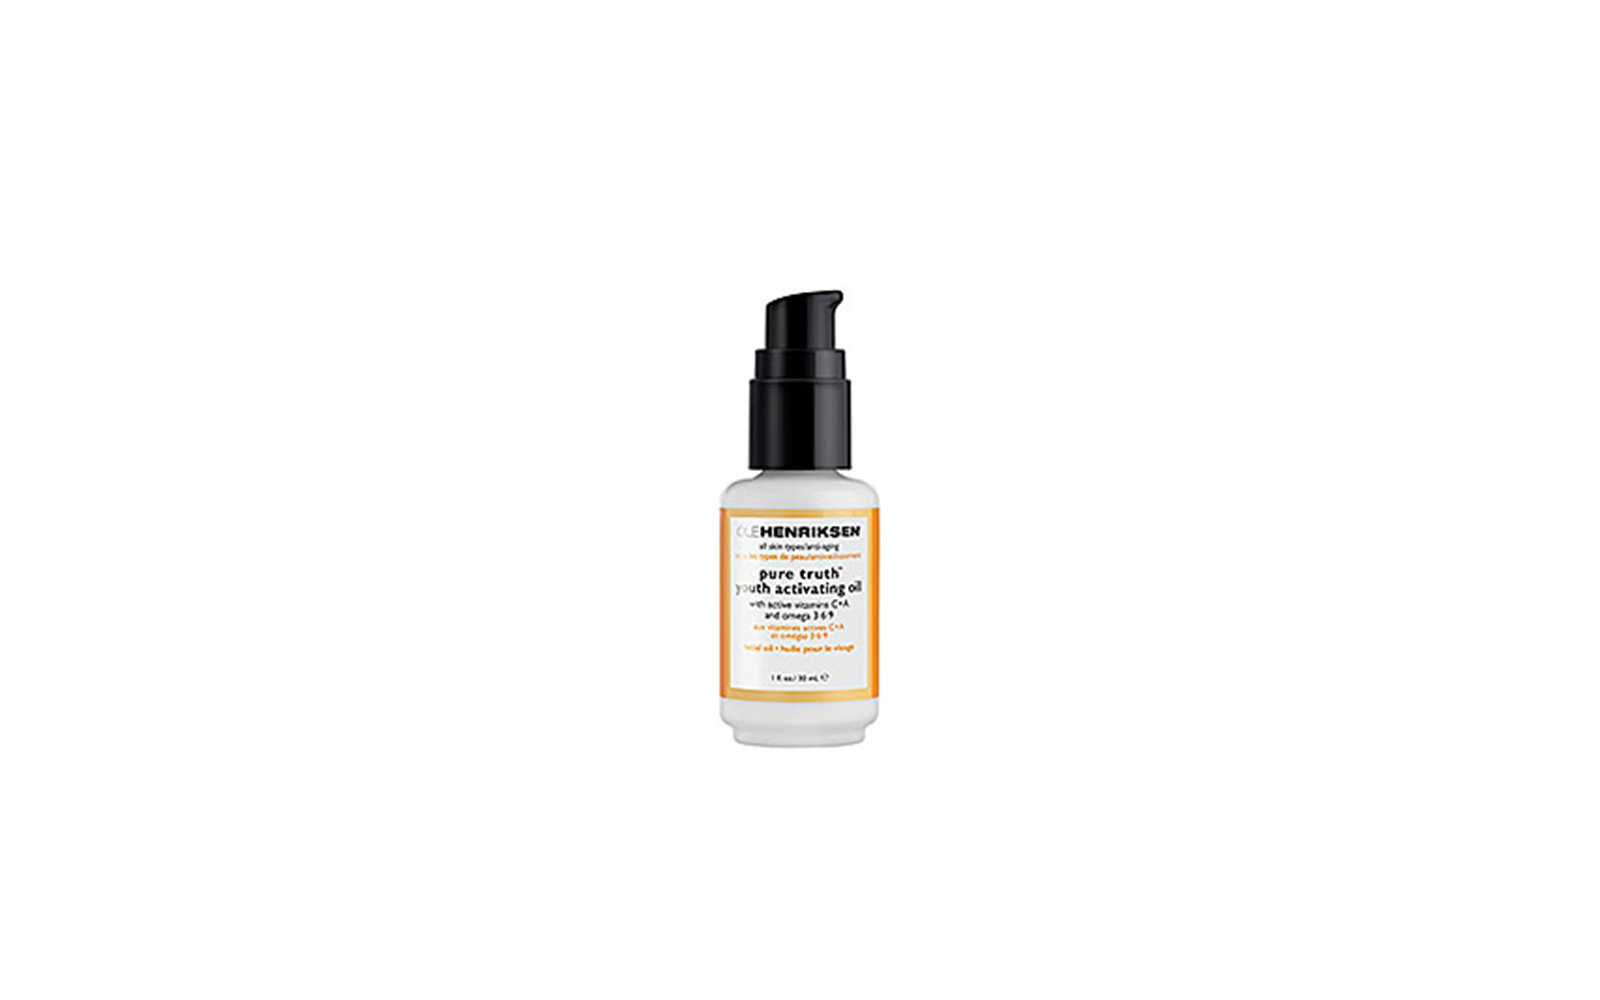 Ole Henriksen Pure Truth Vitamin C Youth Activating Oil